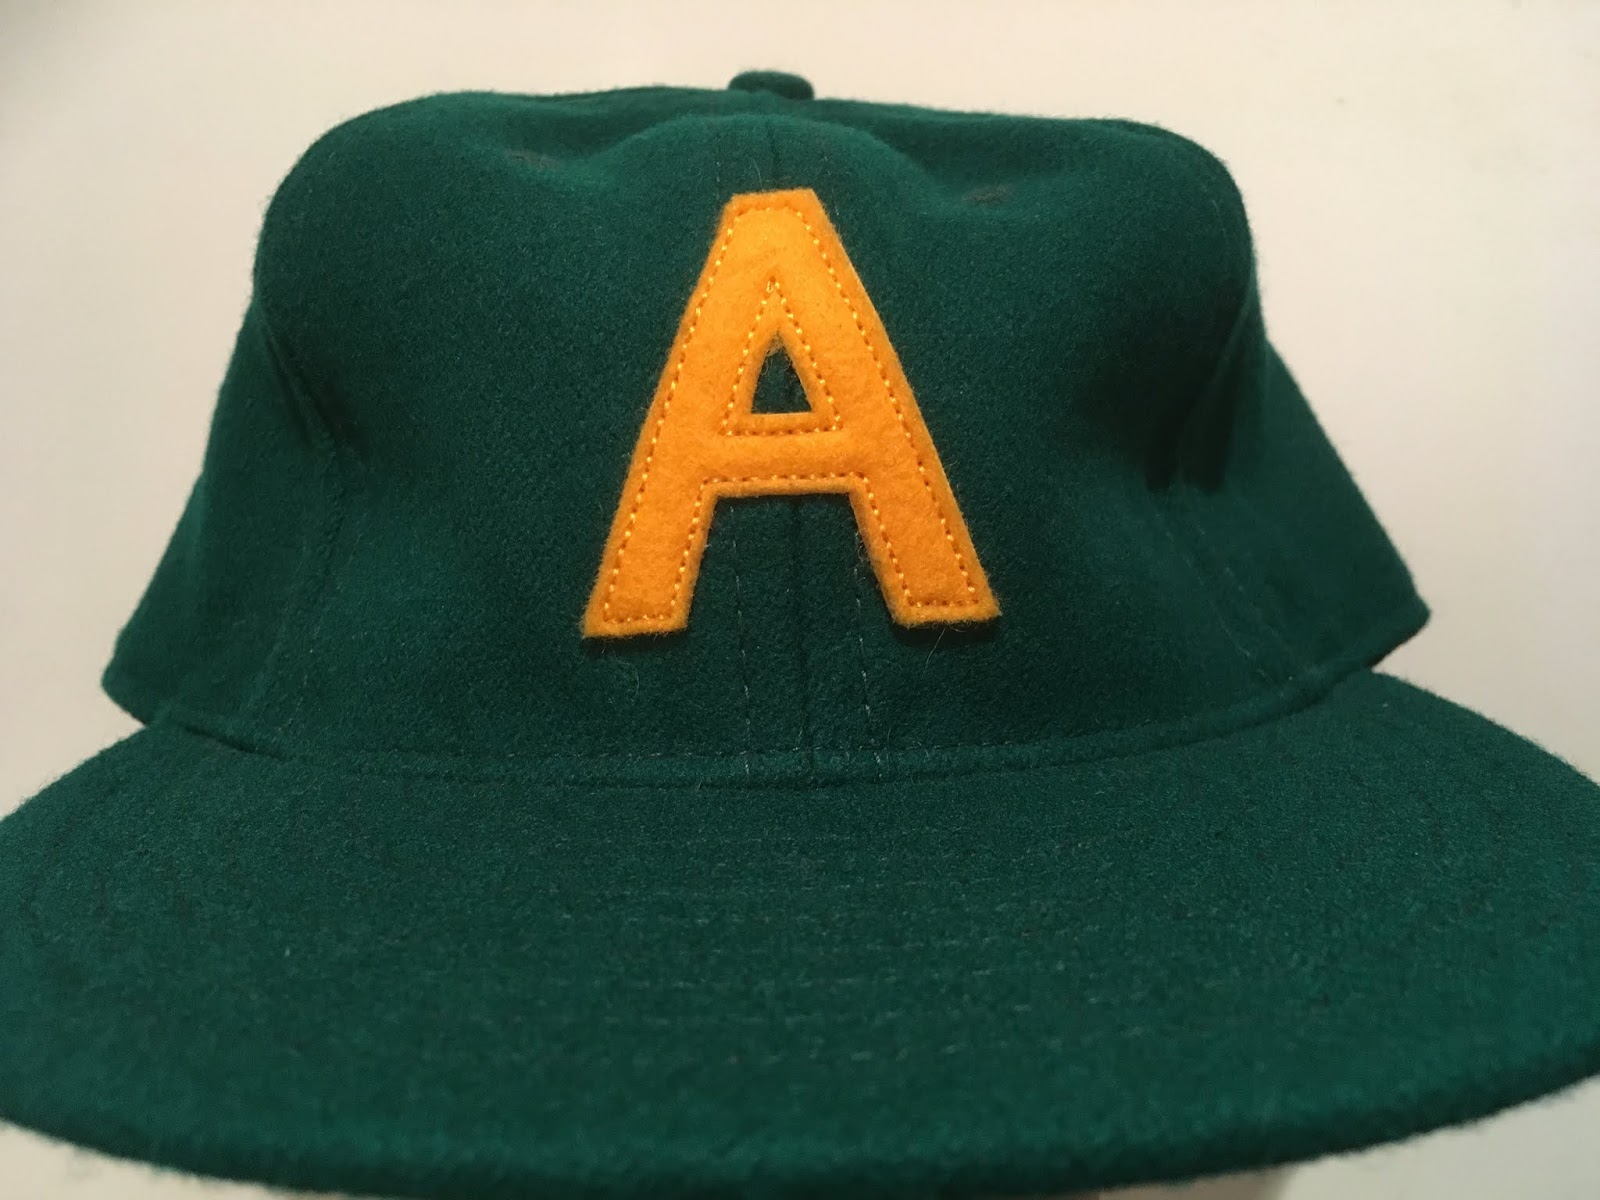 Behold the Green and Gold! I like the gold felt